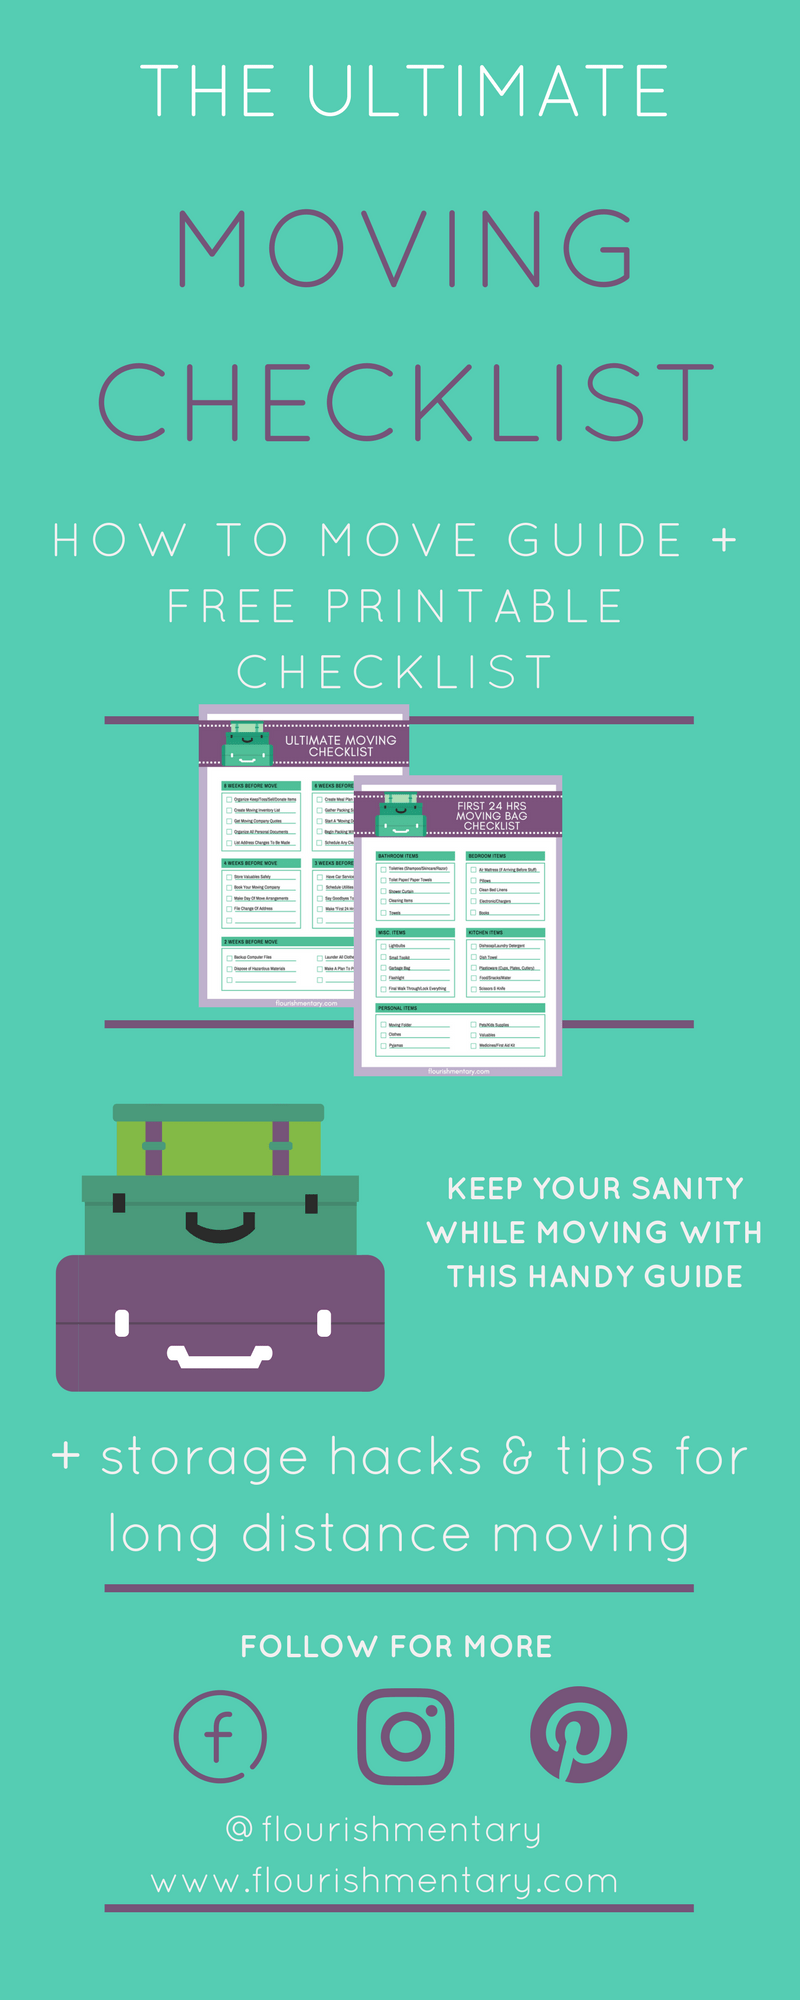 How To Move Guide + The Ultimate Moving Checklist | Flourishmentary